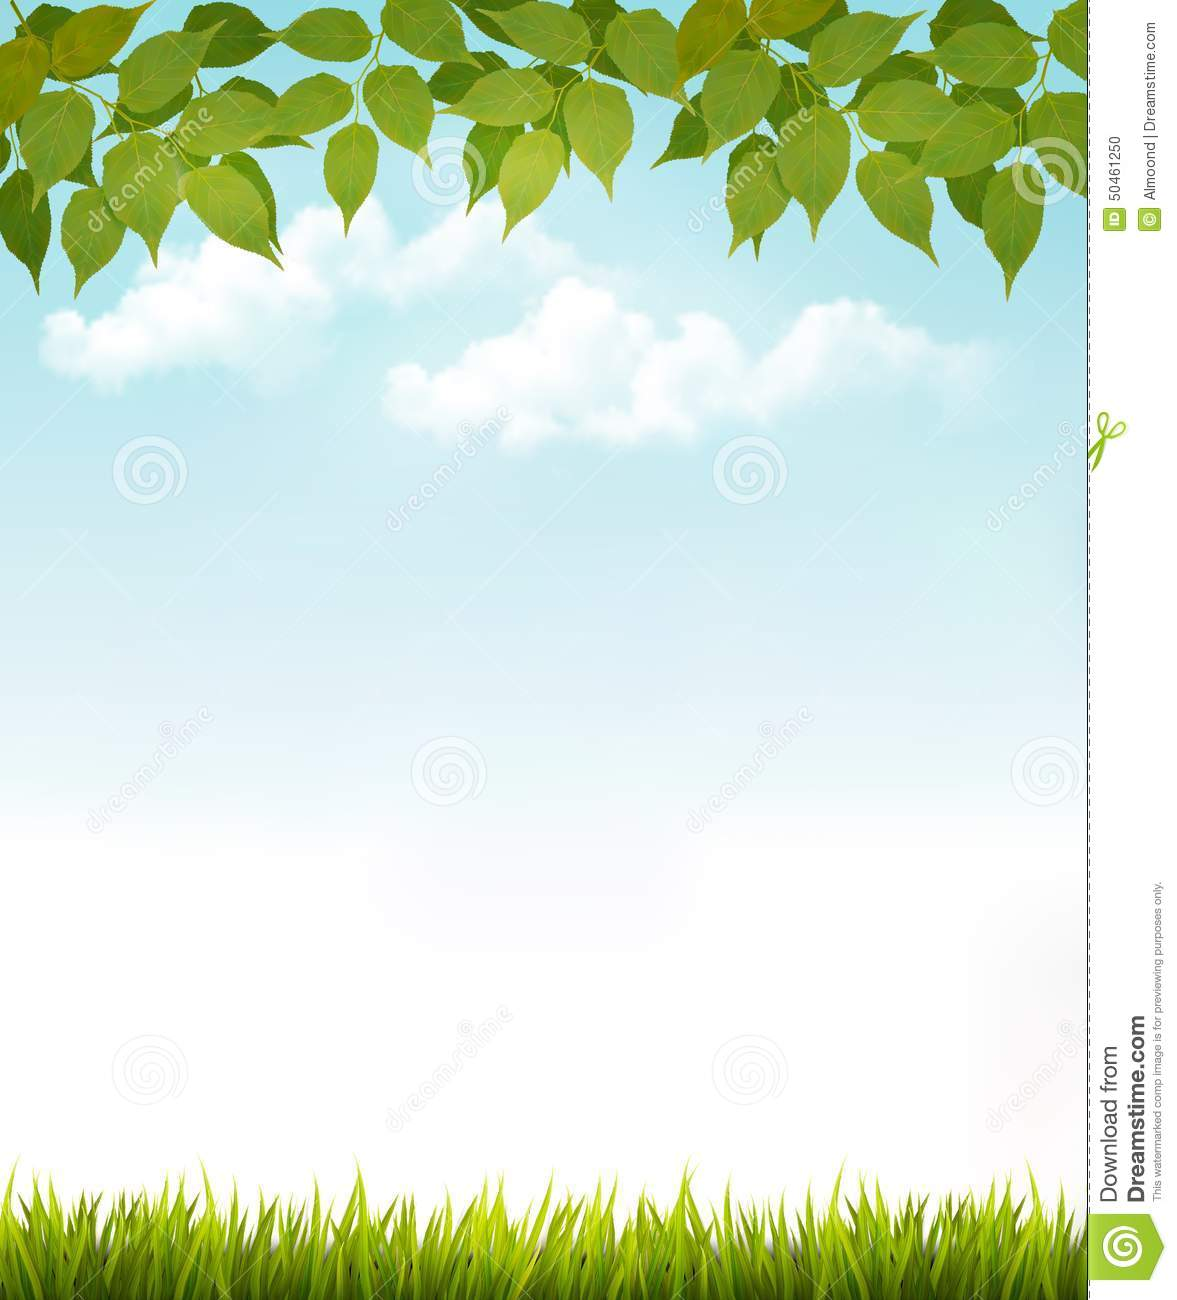 Nature Background With Leaves And Grass. Stock Photo ...